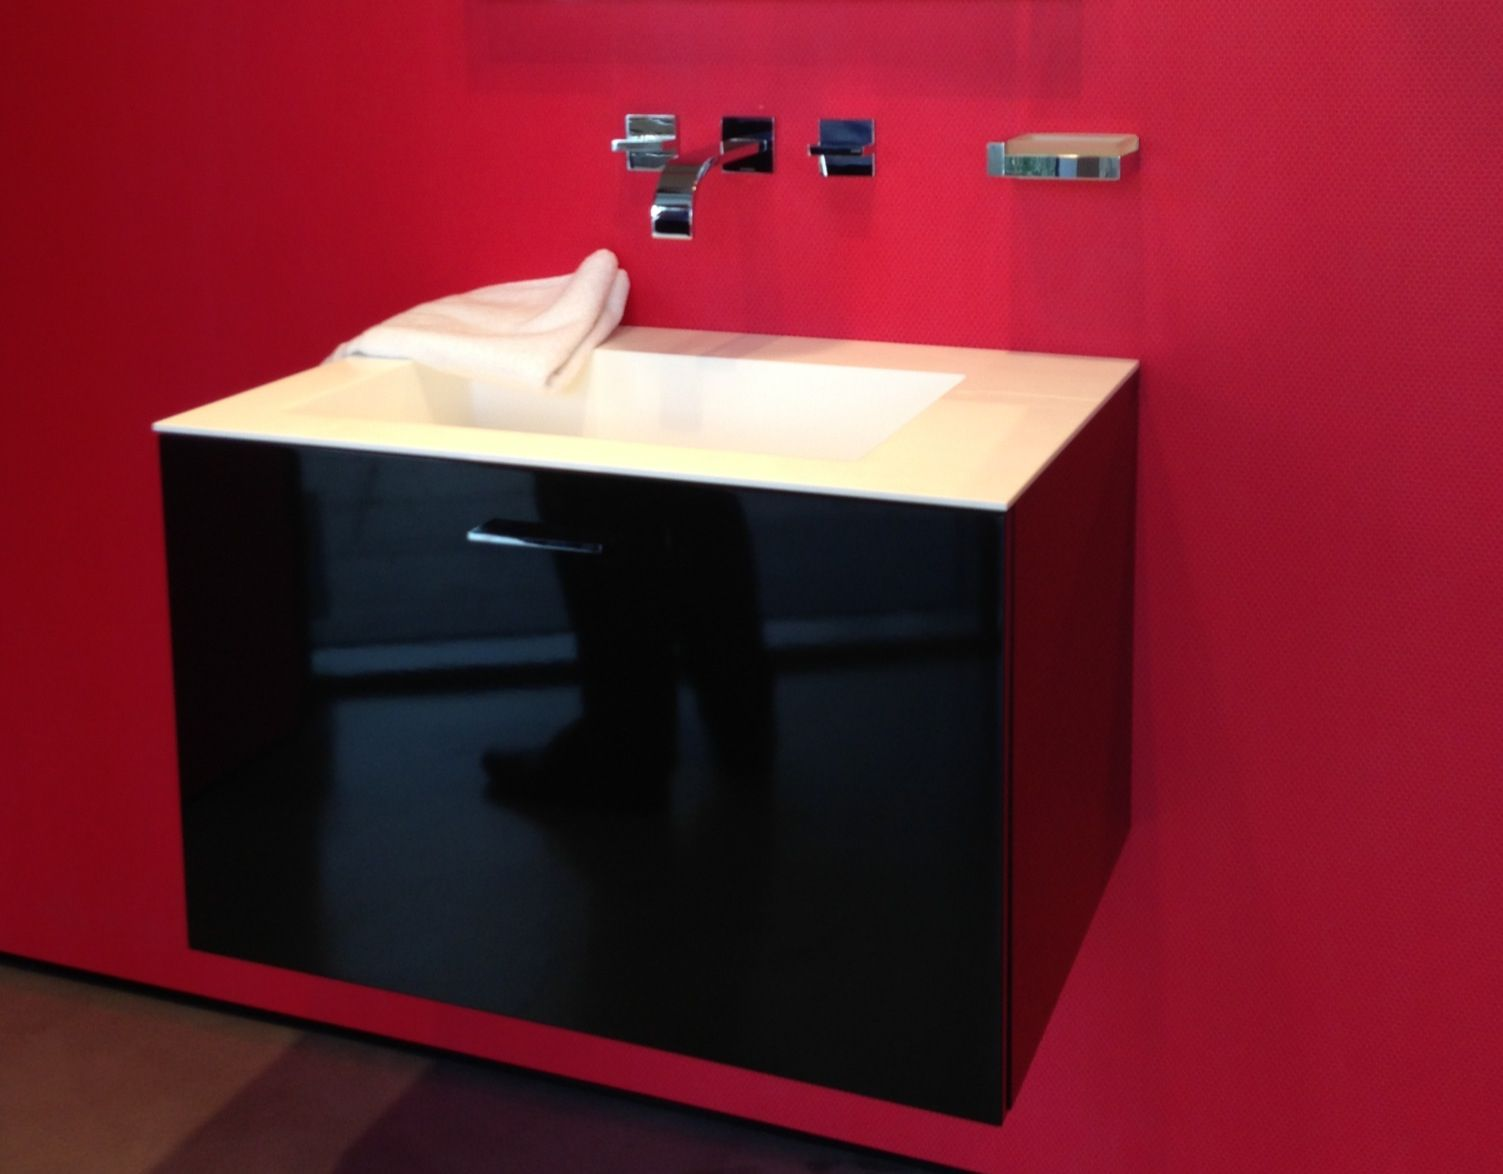 Omvivo Neo, 700 Wall Hung Vanity $2190 AU Available At Reece